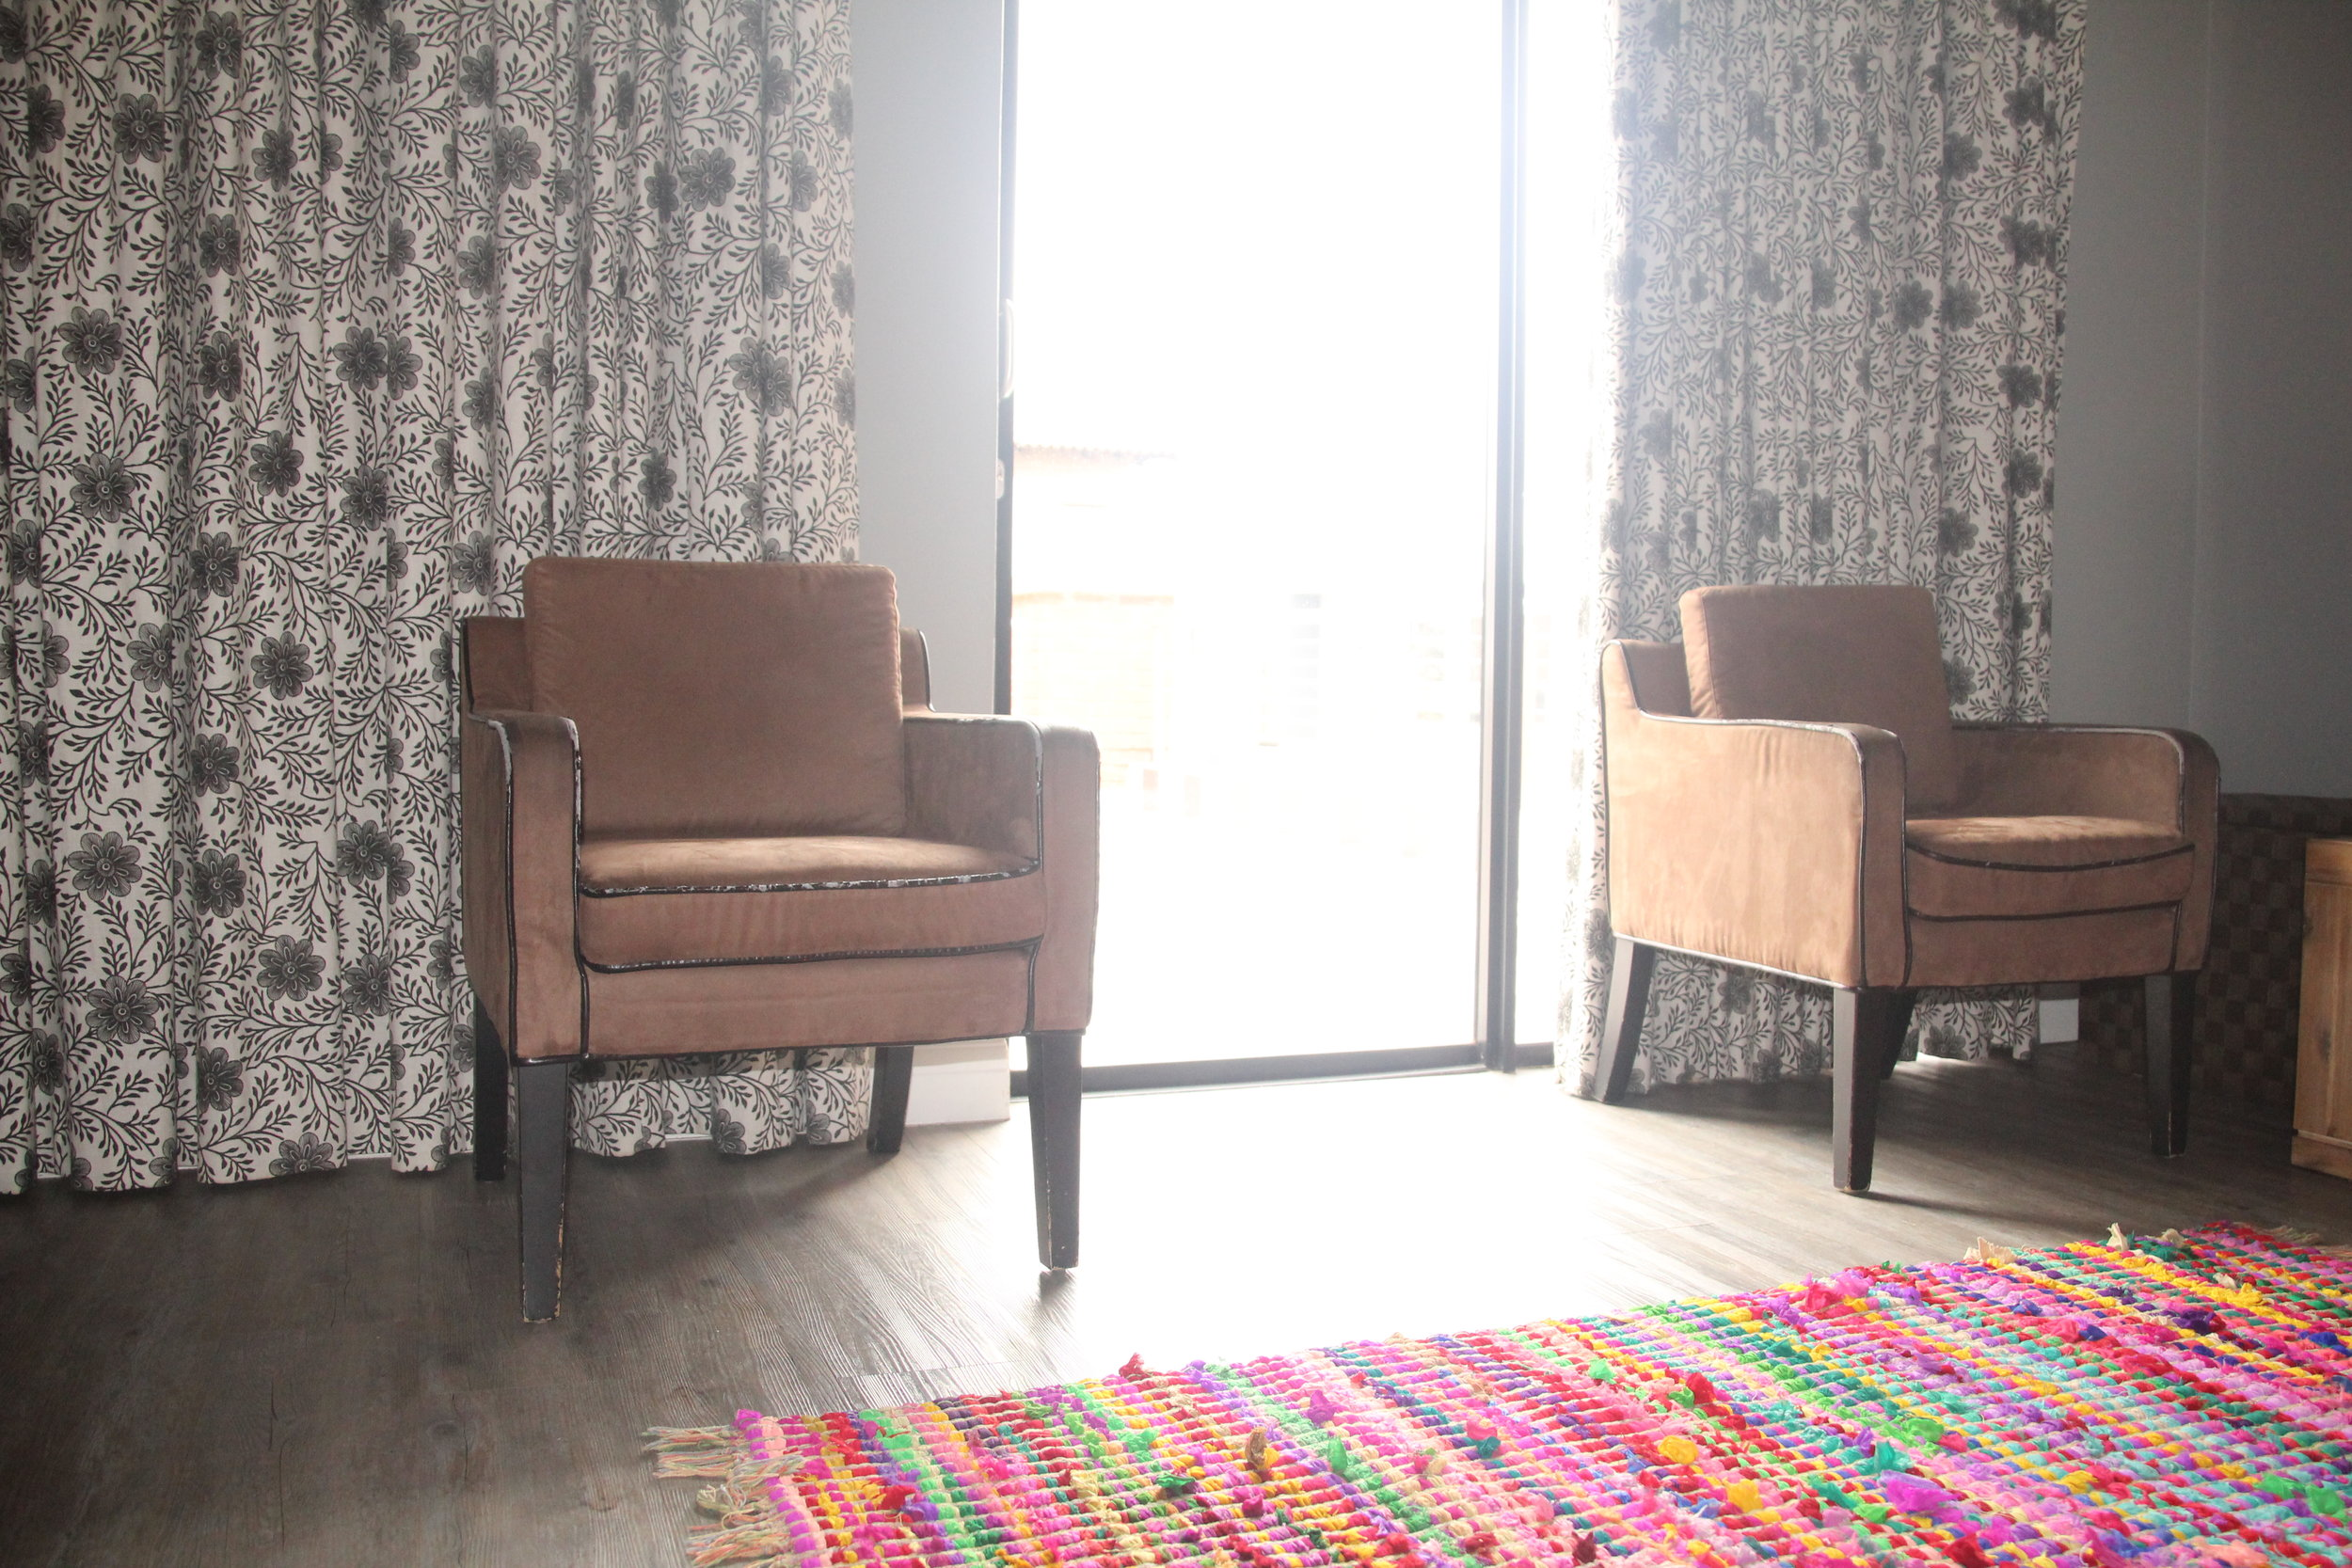 5 Upstairs Pajama Lounge with chairs and curtains with contrast piping and bright rug.JPG